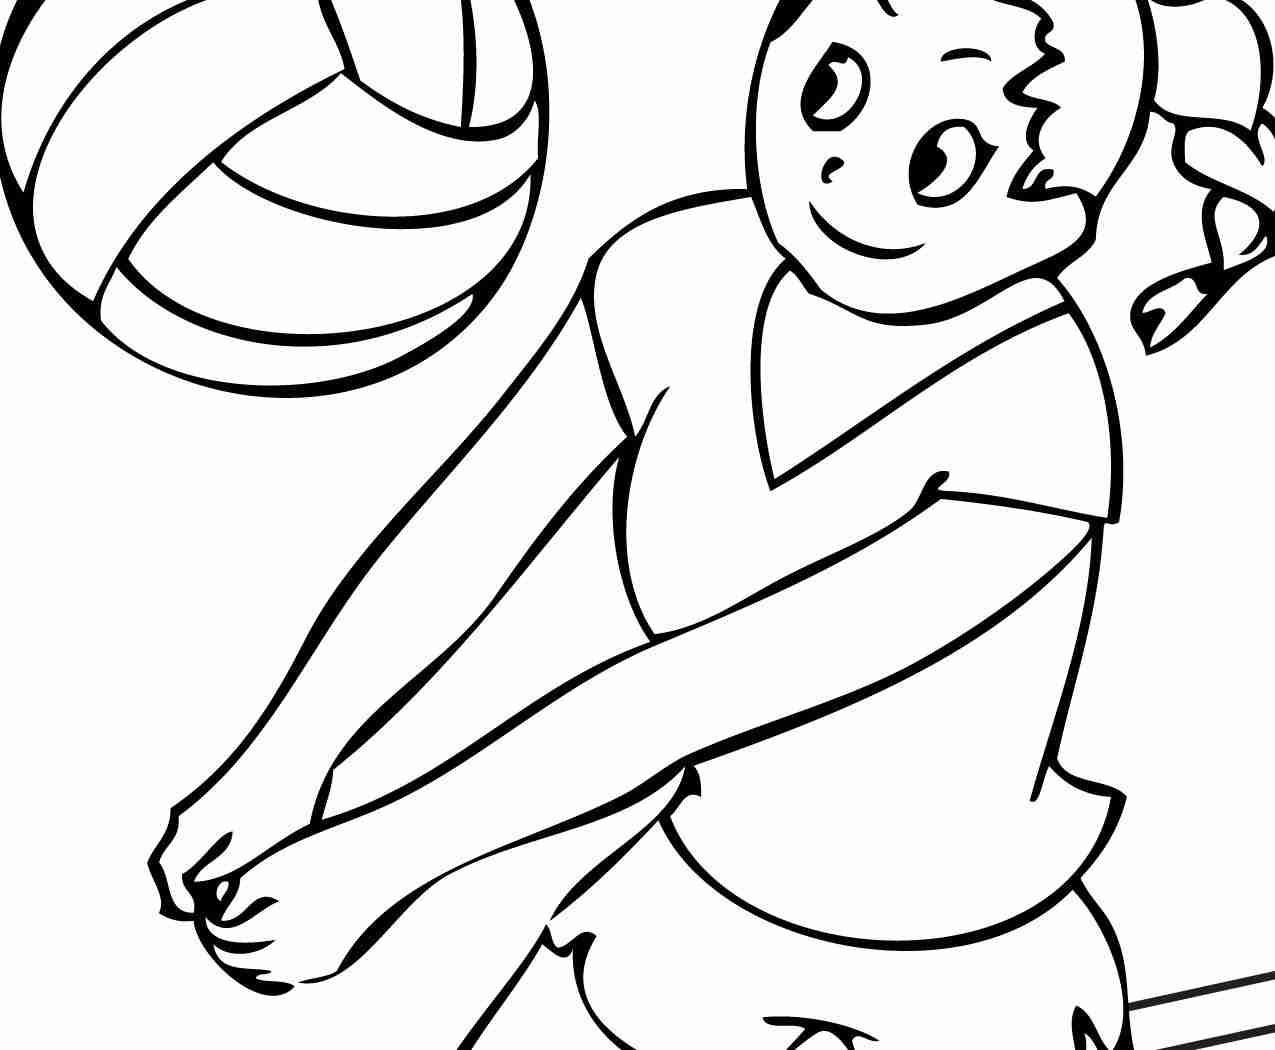 1275x1050 Volleyball Coloring Pages Isolution Me And Olegratiy